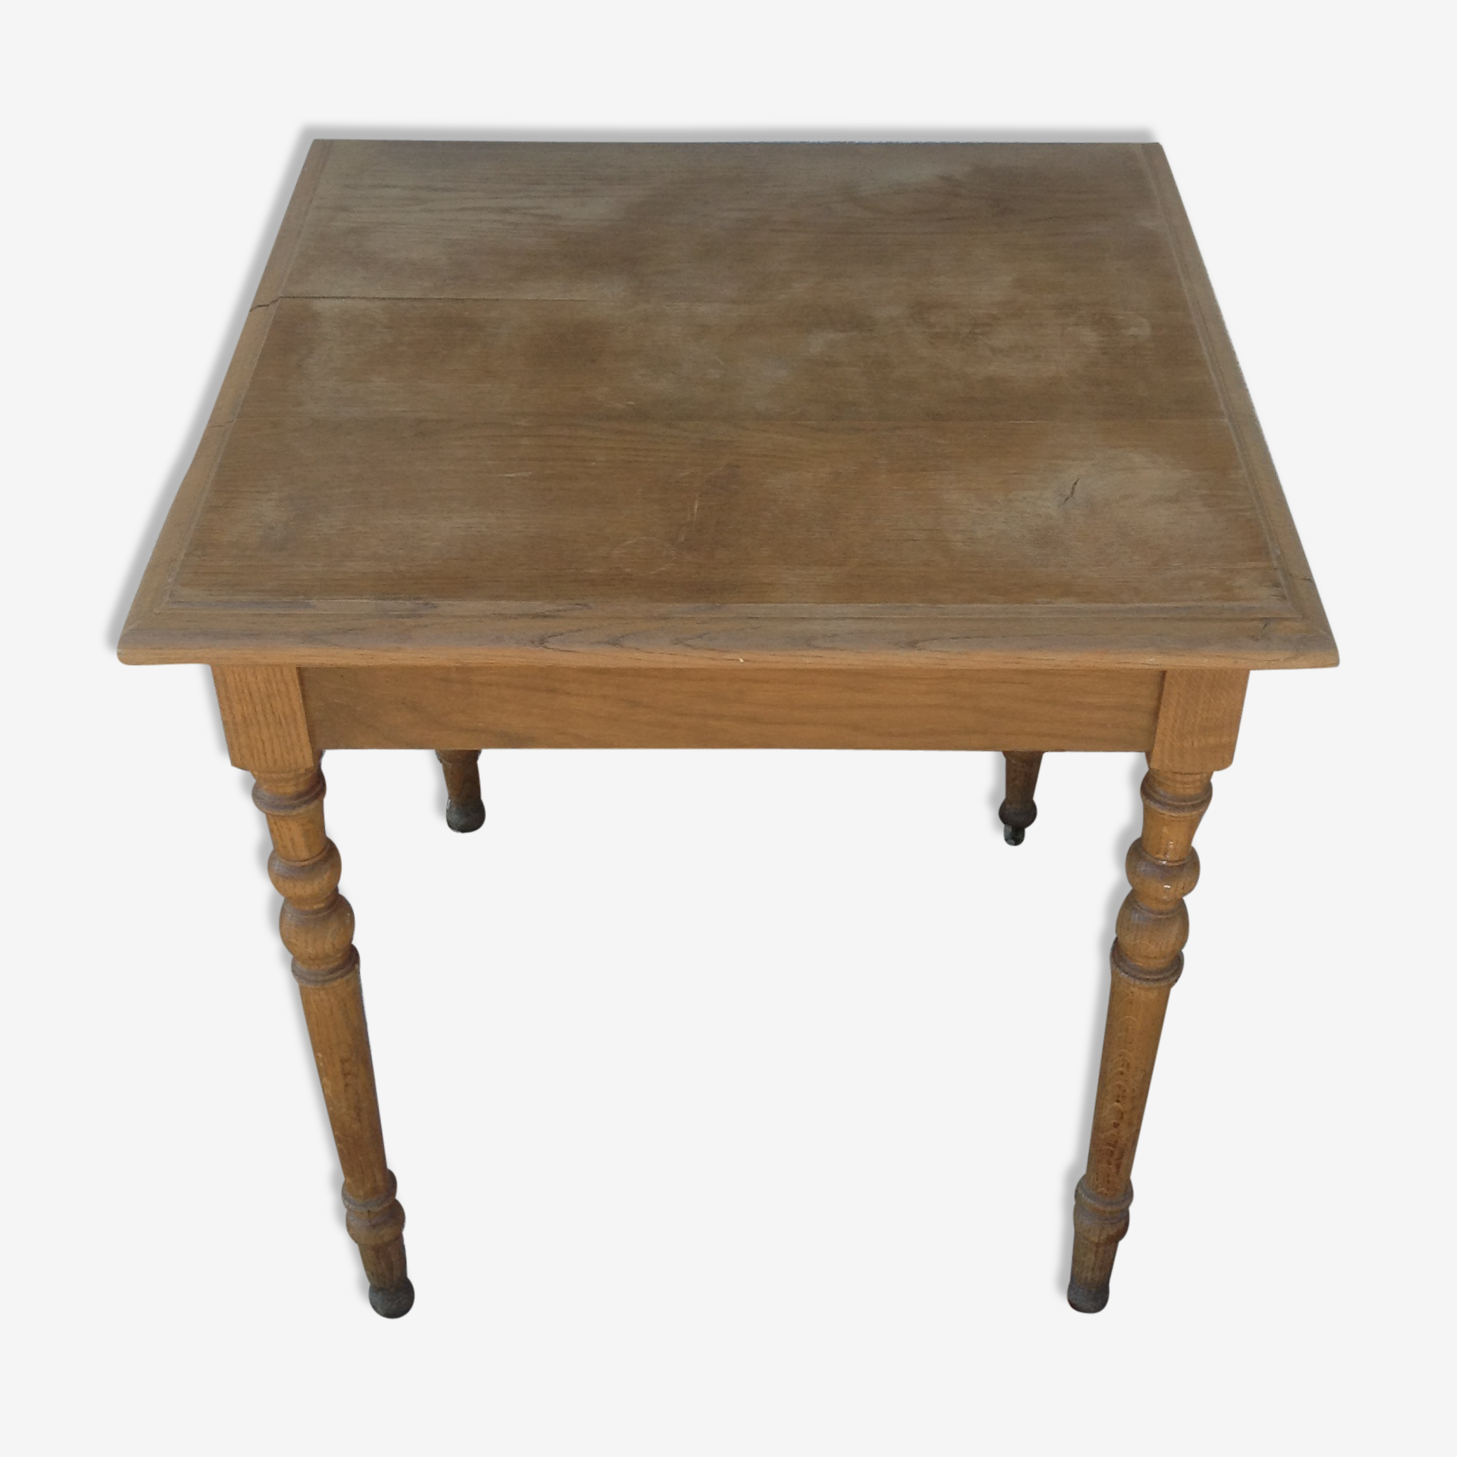 Square solid oak table